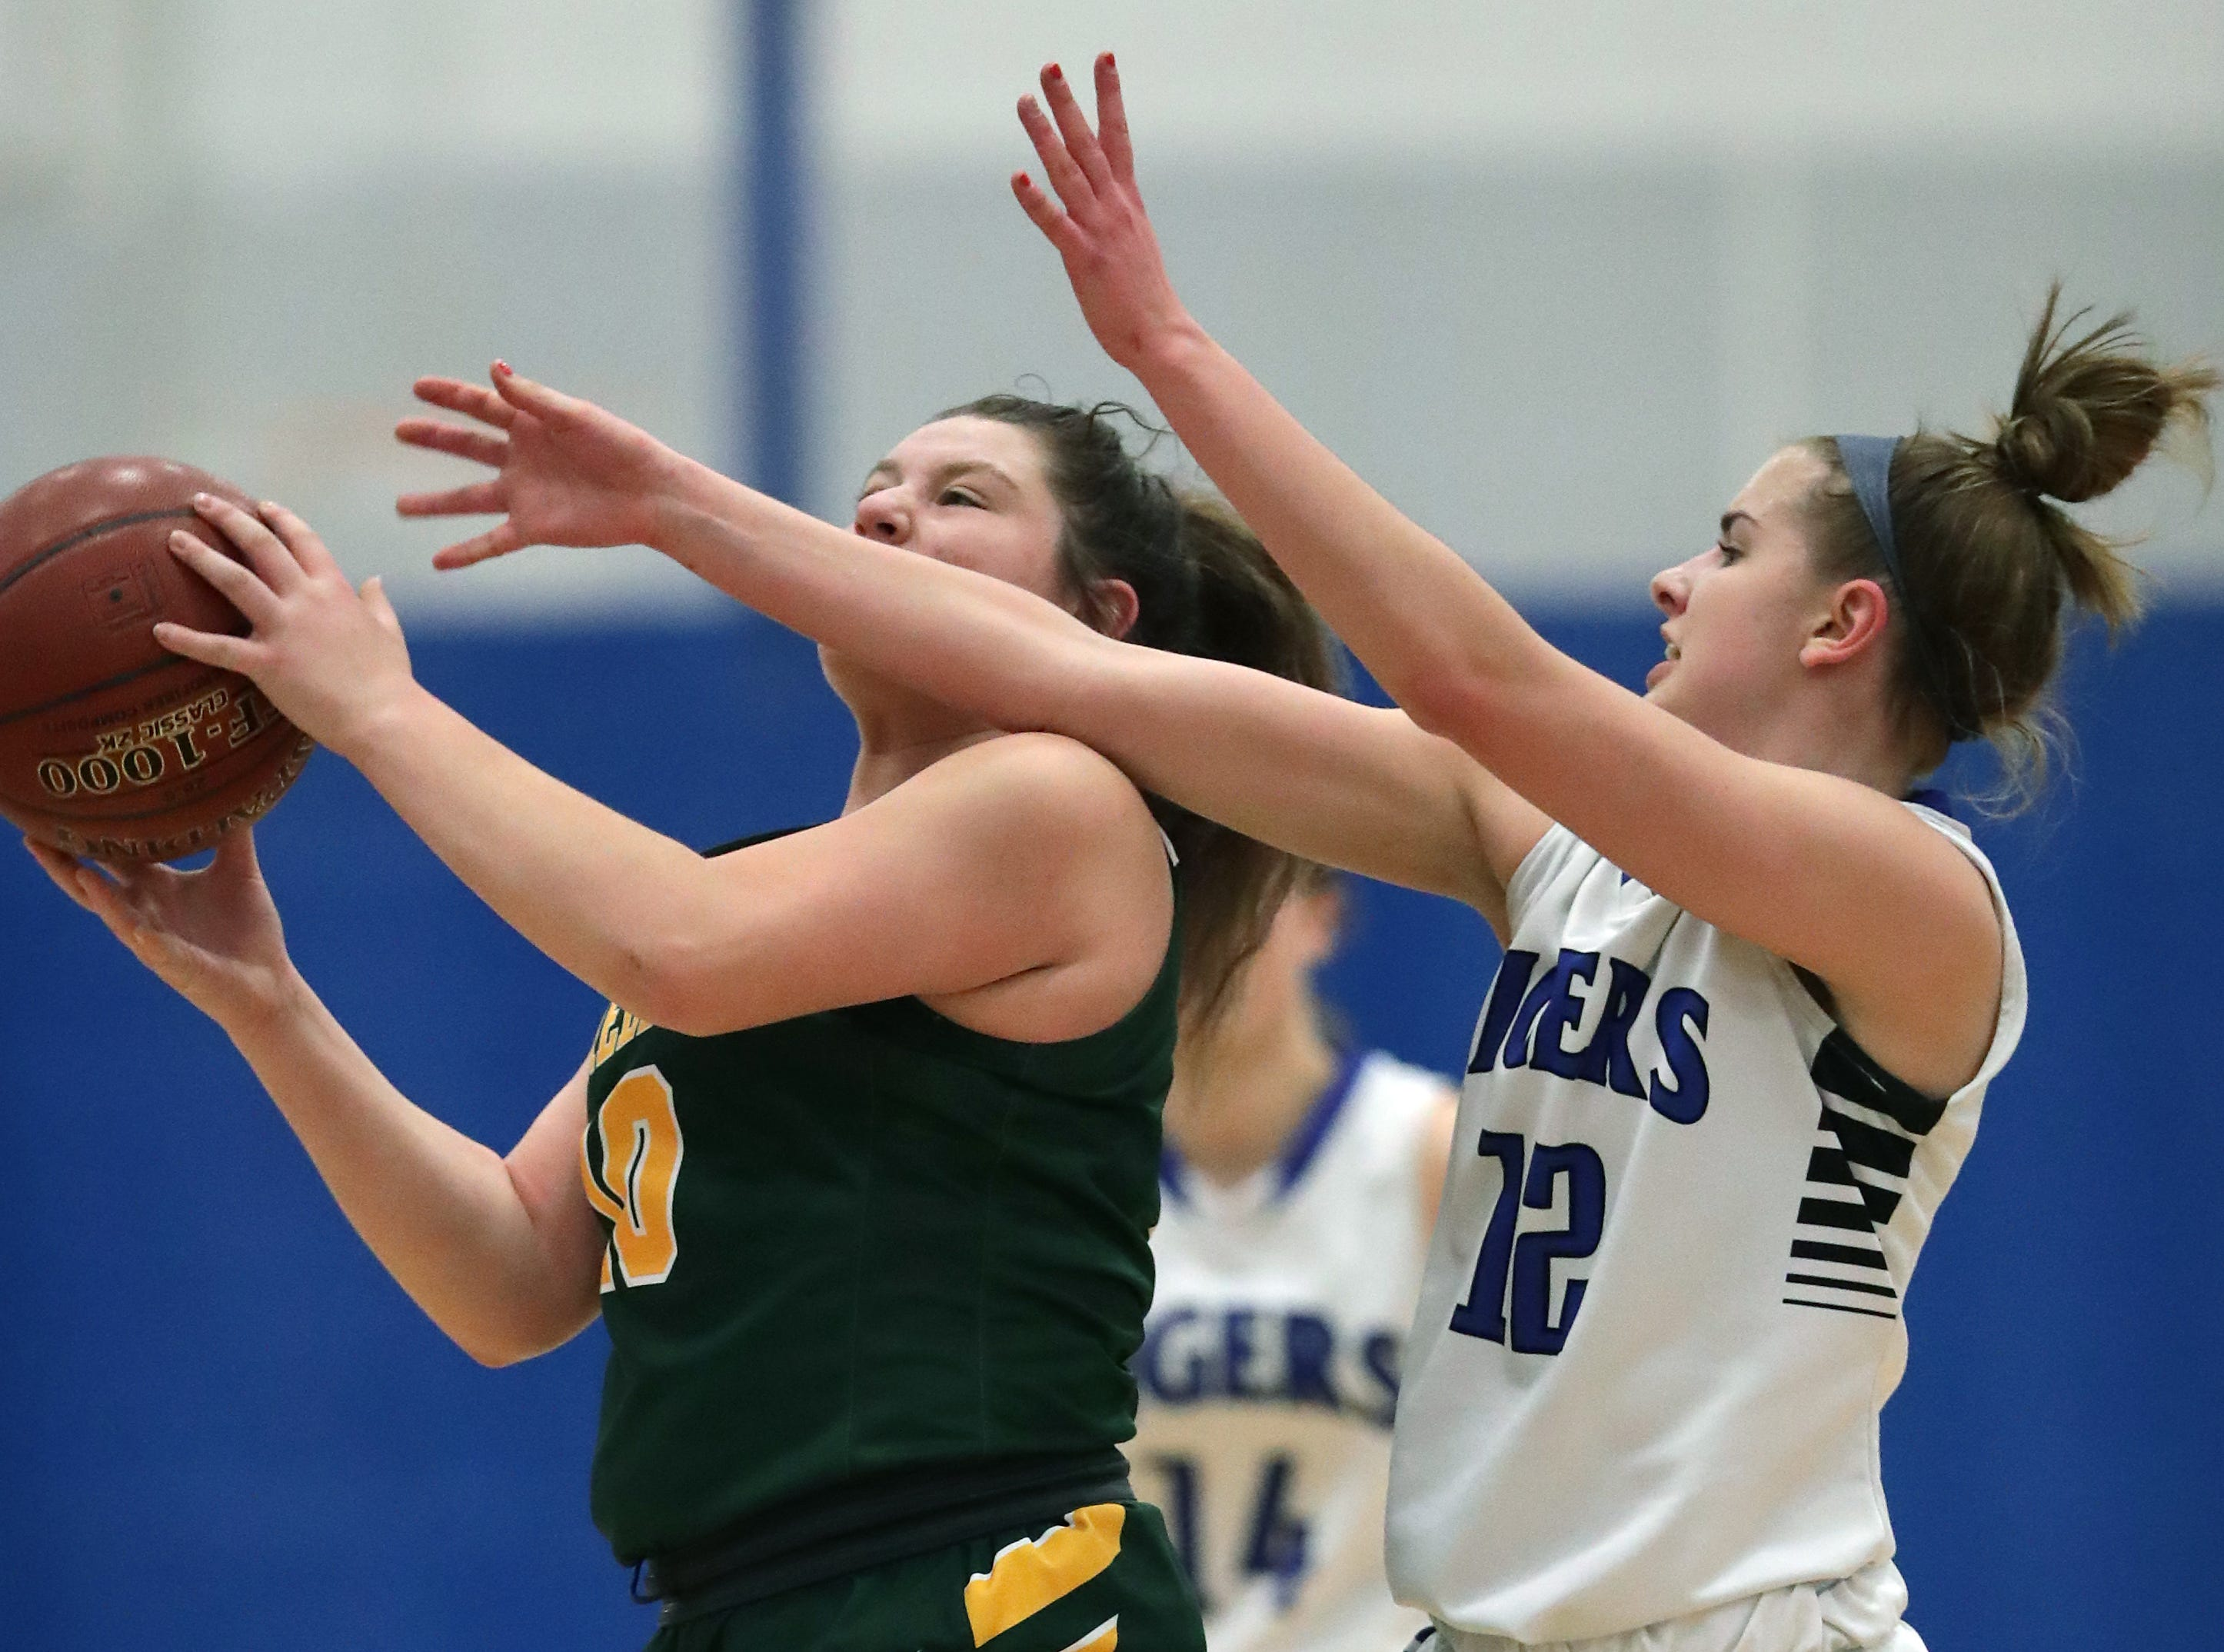 Wrightstown High School's #12 Meghan Riha against Freedom High School's #10 Cameron Evers during their North Eastern Conference girls basketball game on Friday, February 15, 2019, in Wrightstown, Wis. Wrightstown defeated Freedom 69 to 44.Wm. Glasheen/USA TODAY NETWORK-Wisconsin.